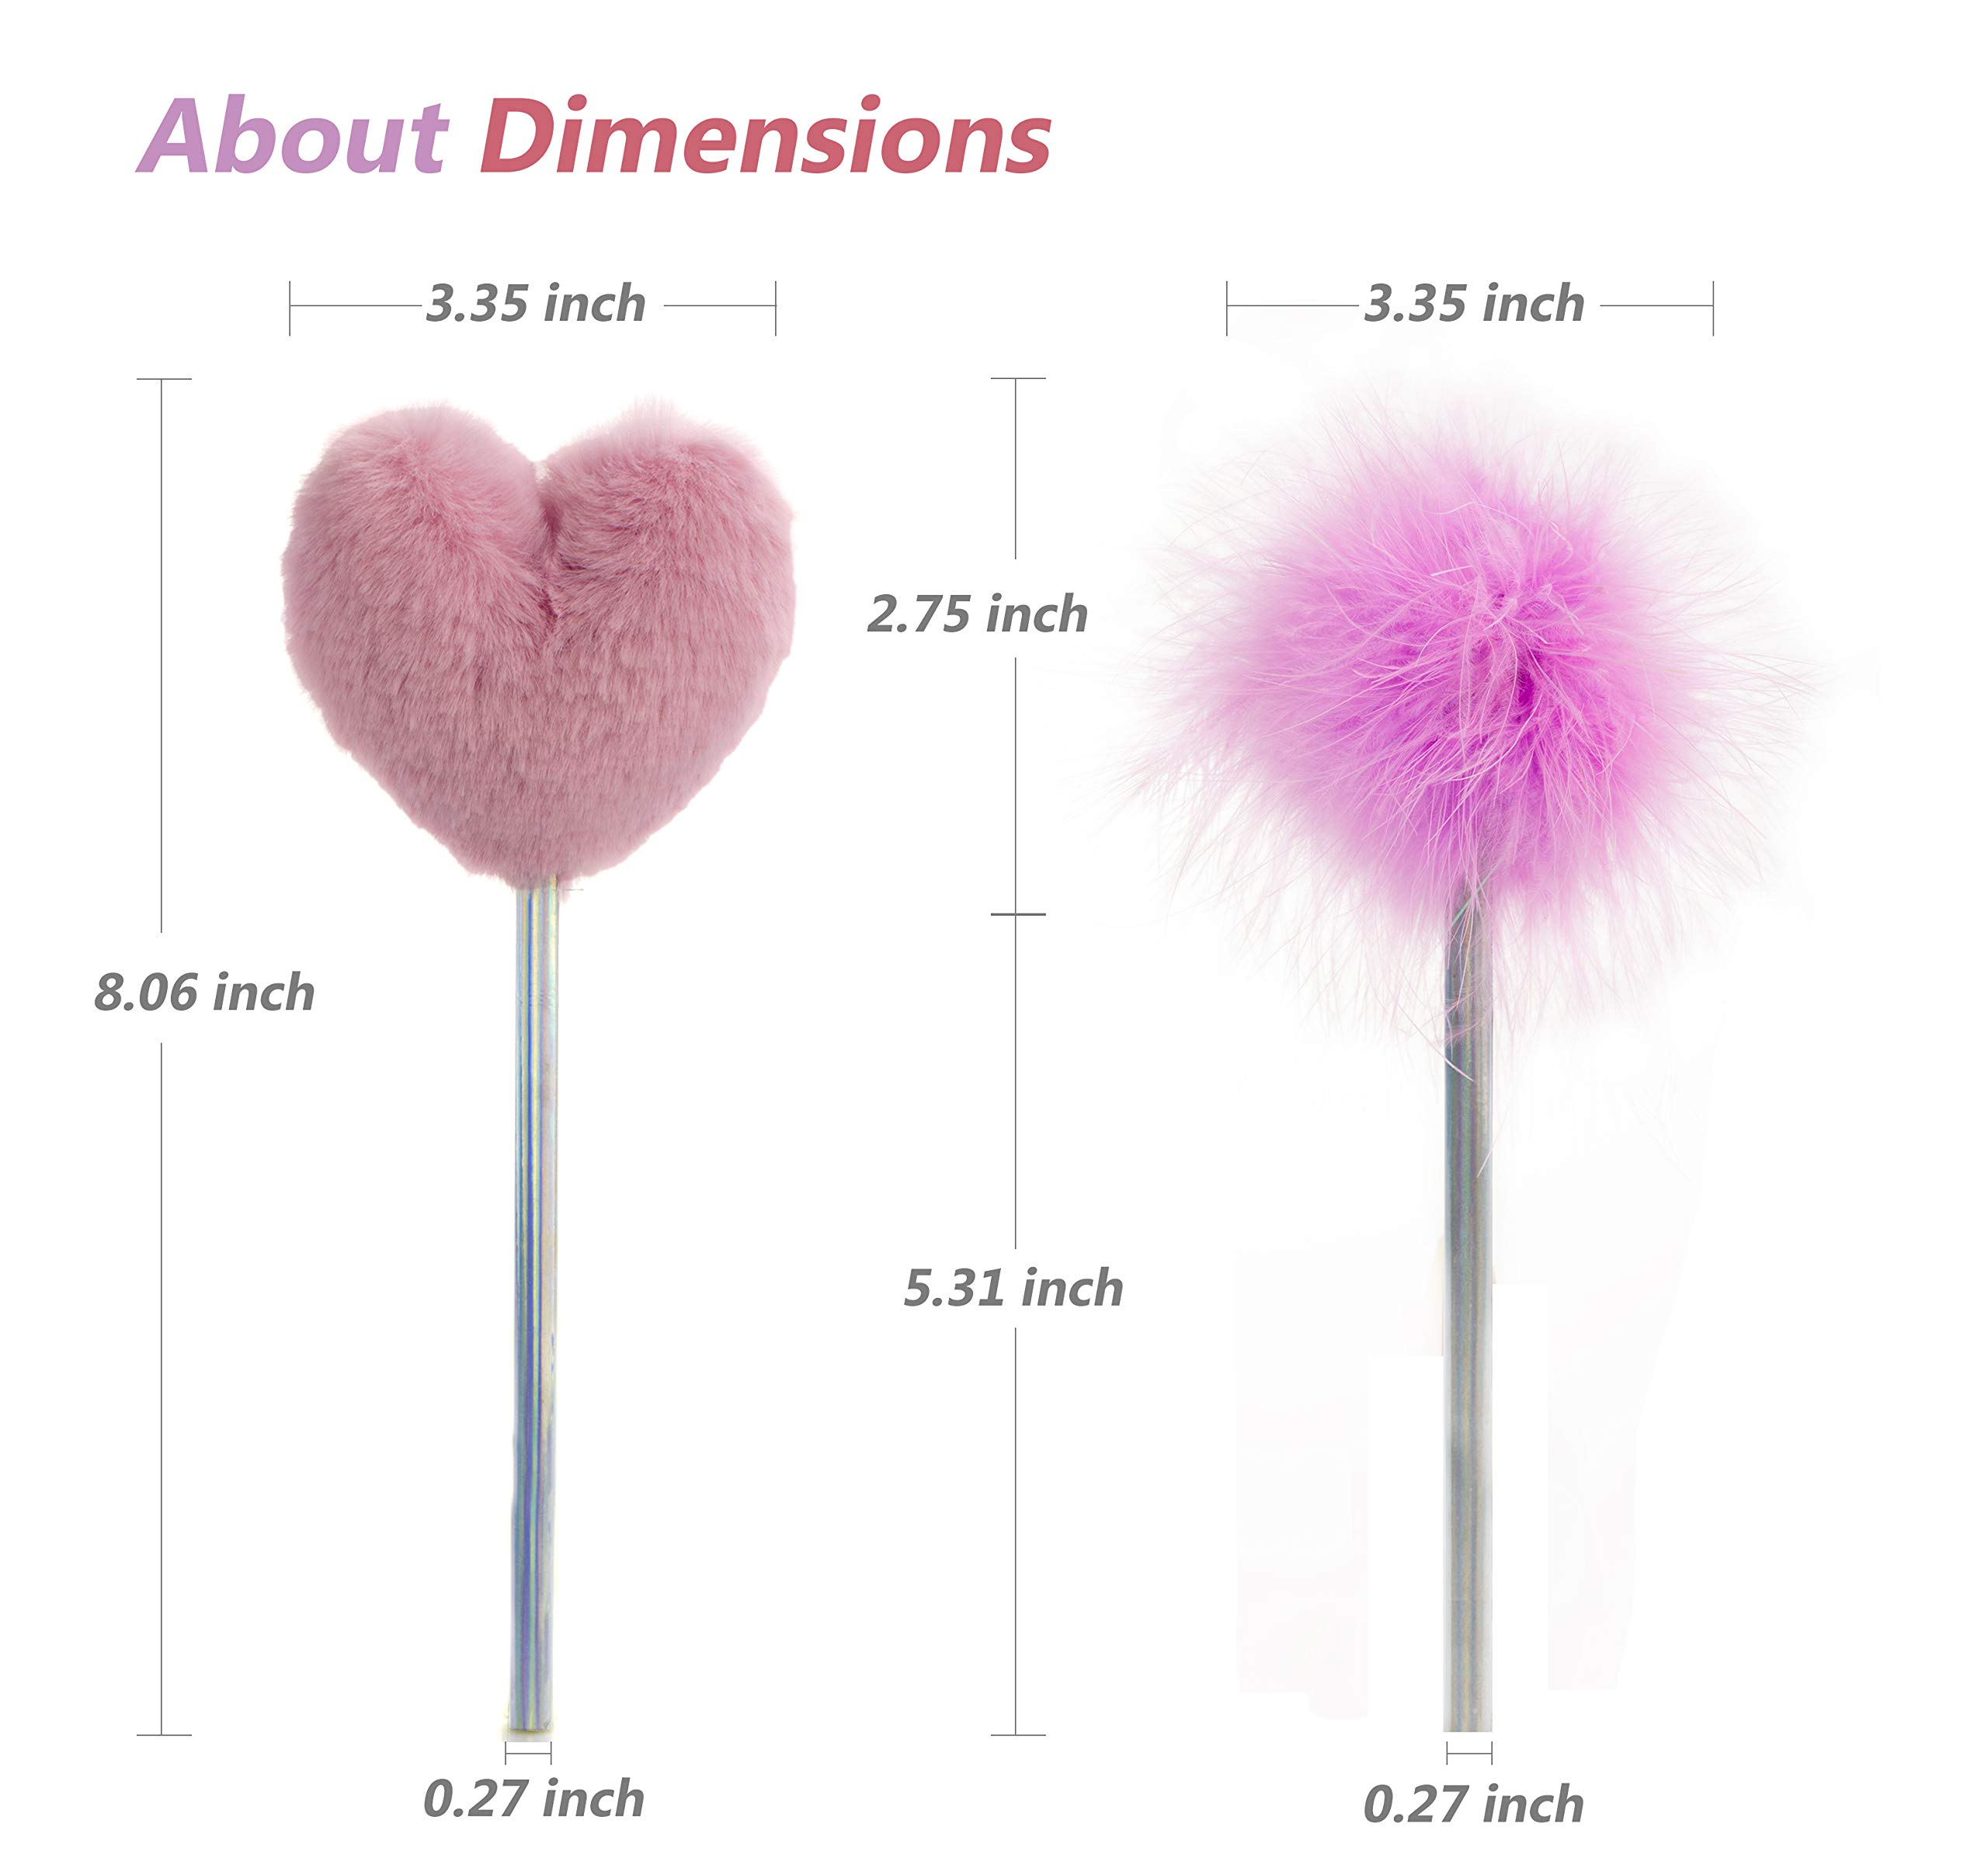 Lazyaunti Cute Fluffy Pencils for Kids Fancy Fun Pencil Toppers Plush Ball Classroom Gift PersonalizedSchoolSupplies for Girls (Purple Heart)